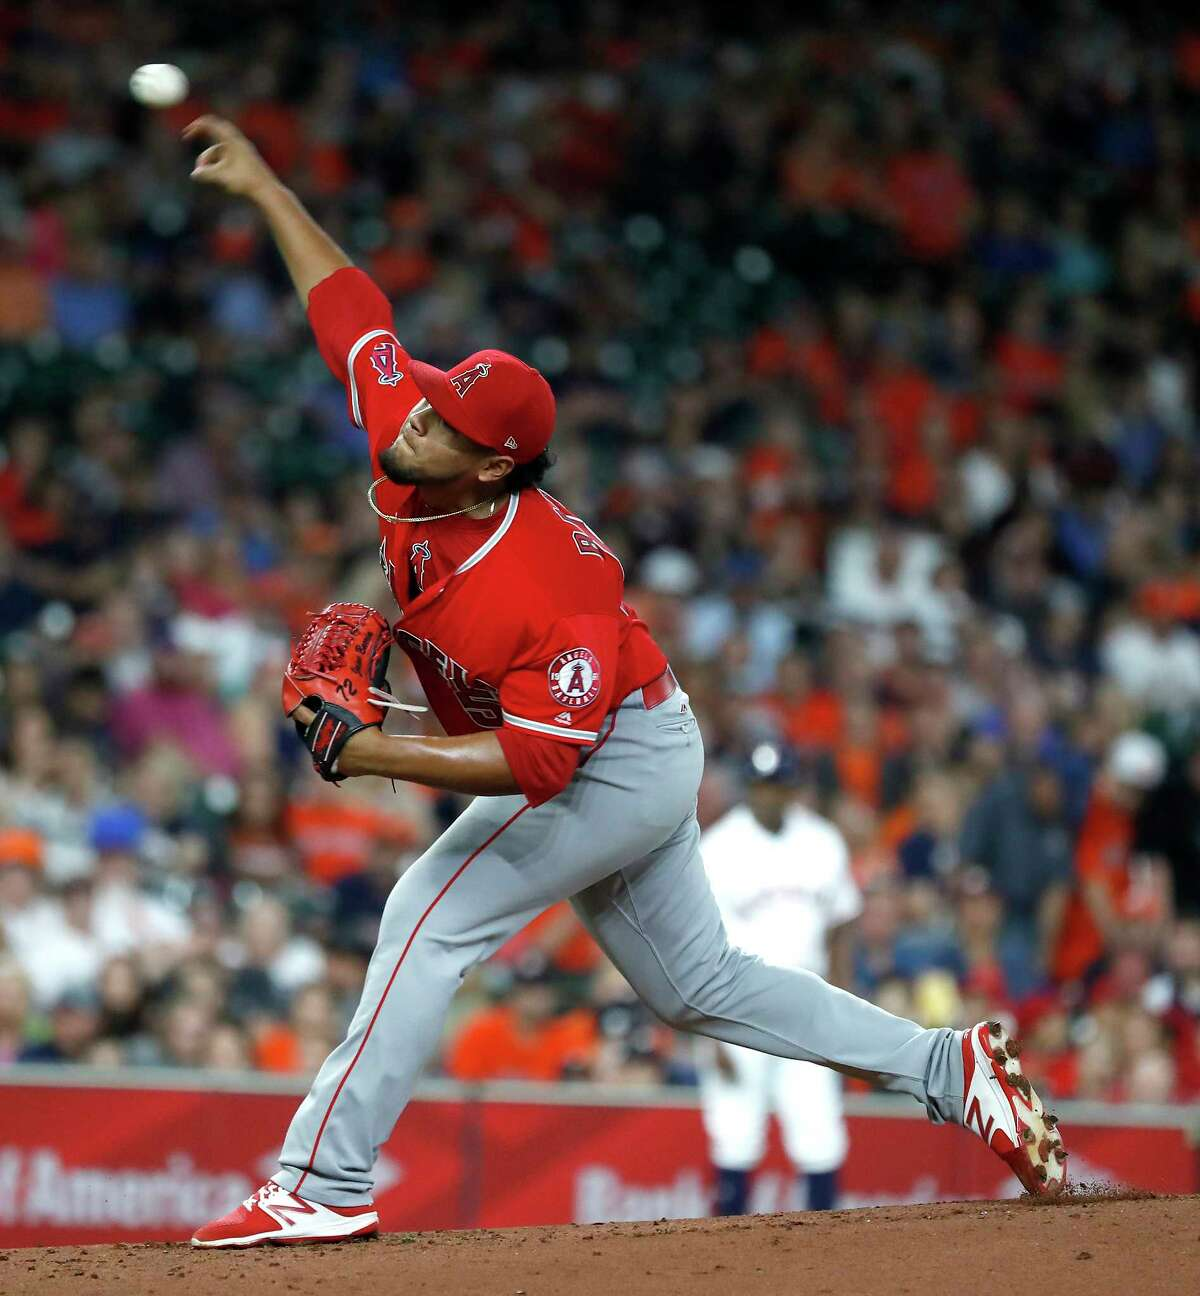 Los Angeles Angels starting pitcher Jaime Barria (51) pitches during the first inning of an MLB baseball game at Minute Maid Park, Saturday, September 22, 2018, in Houston.